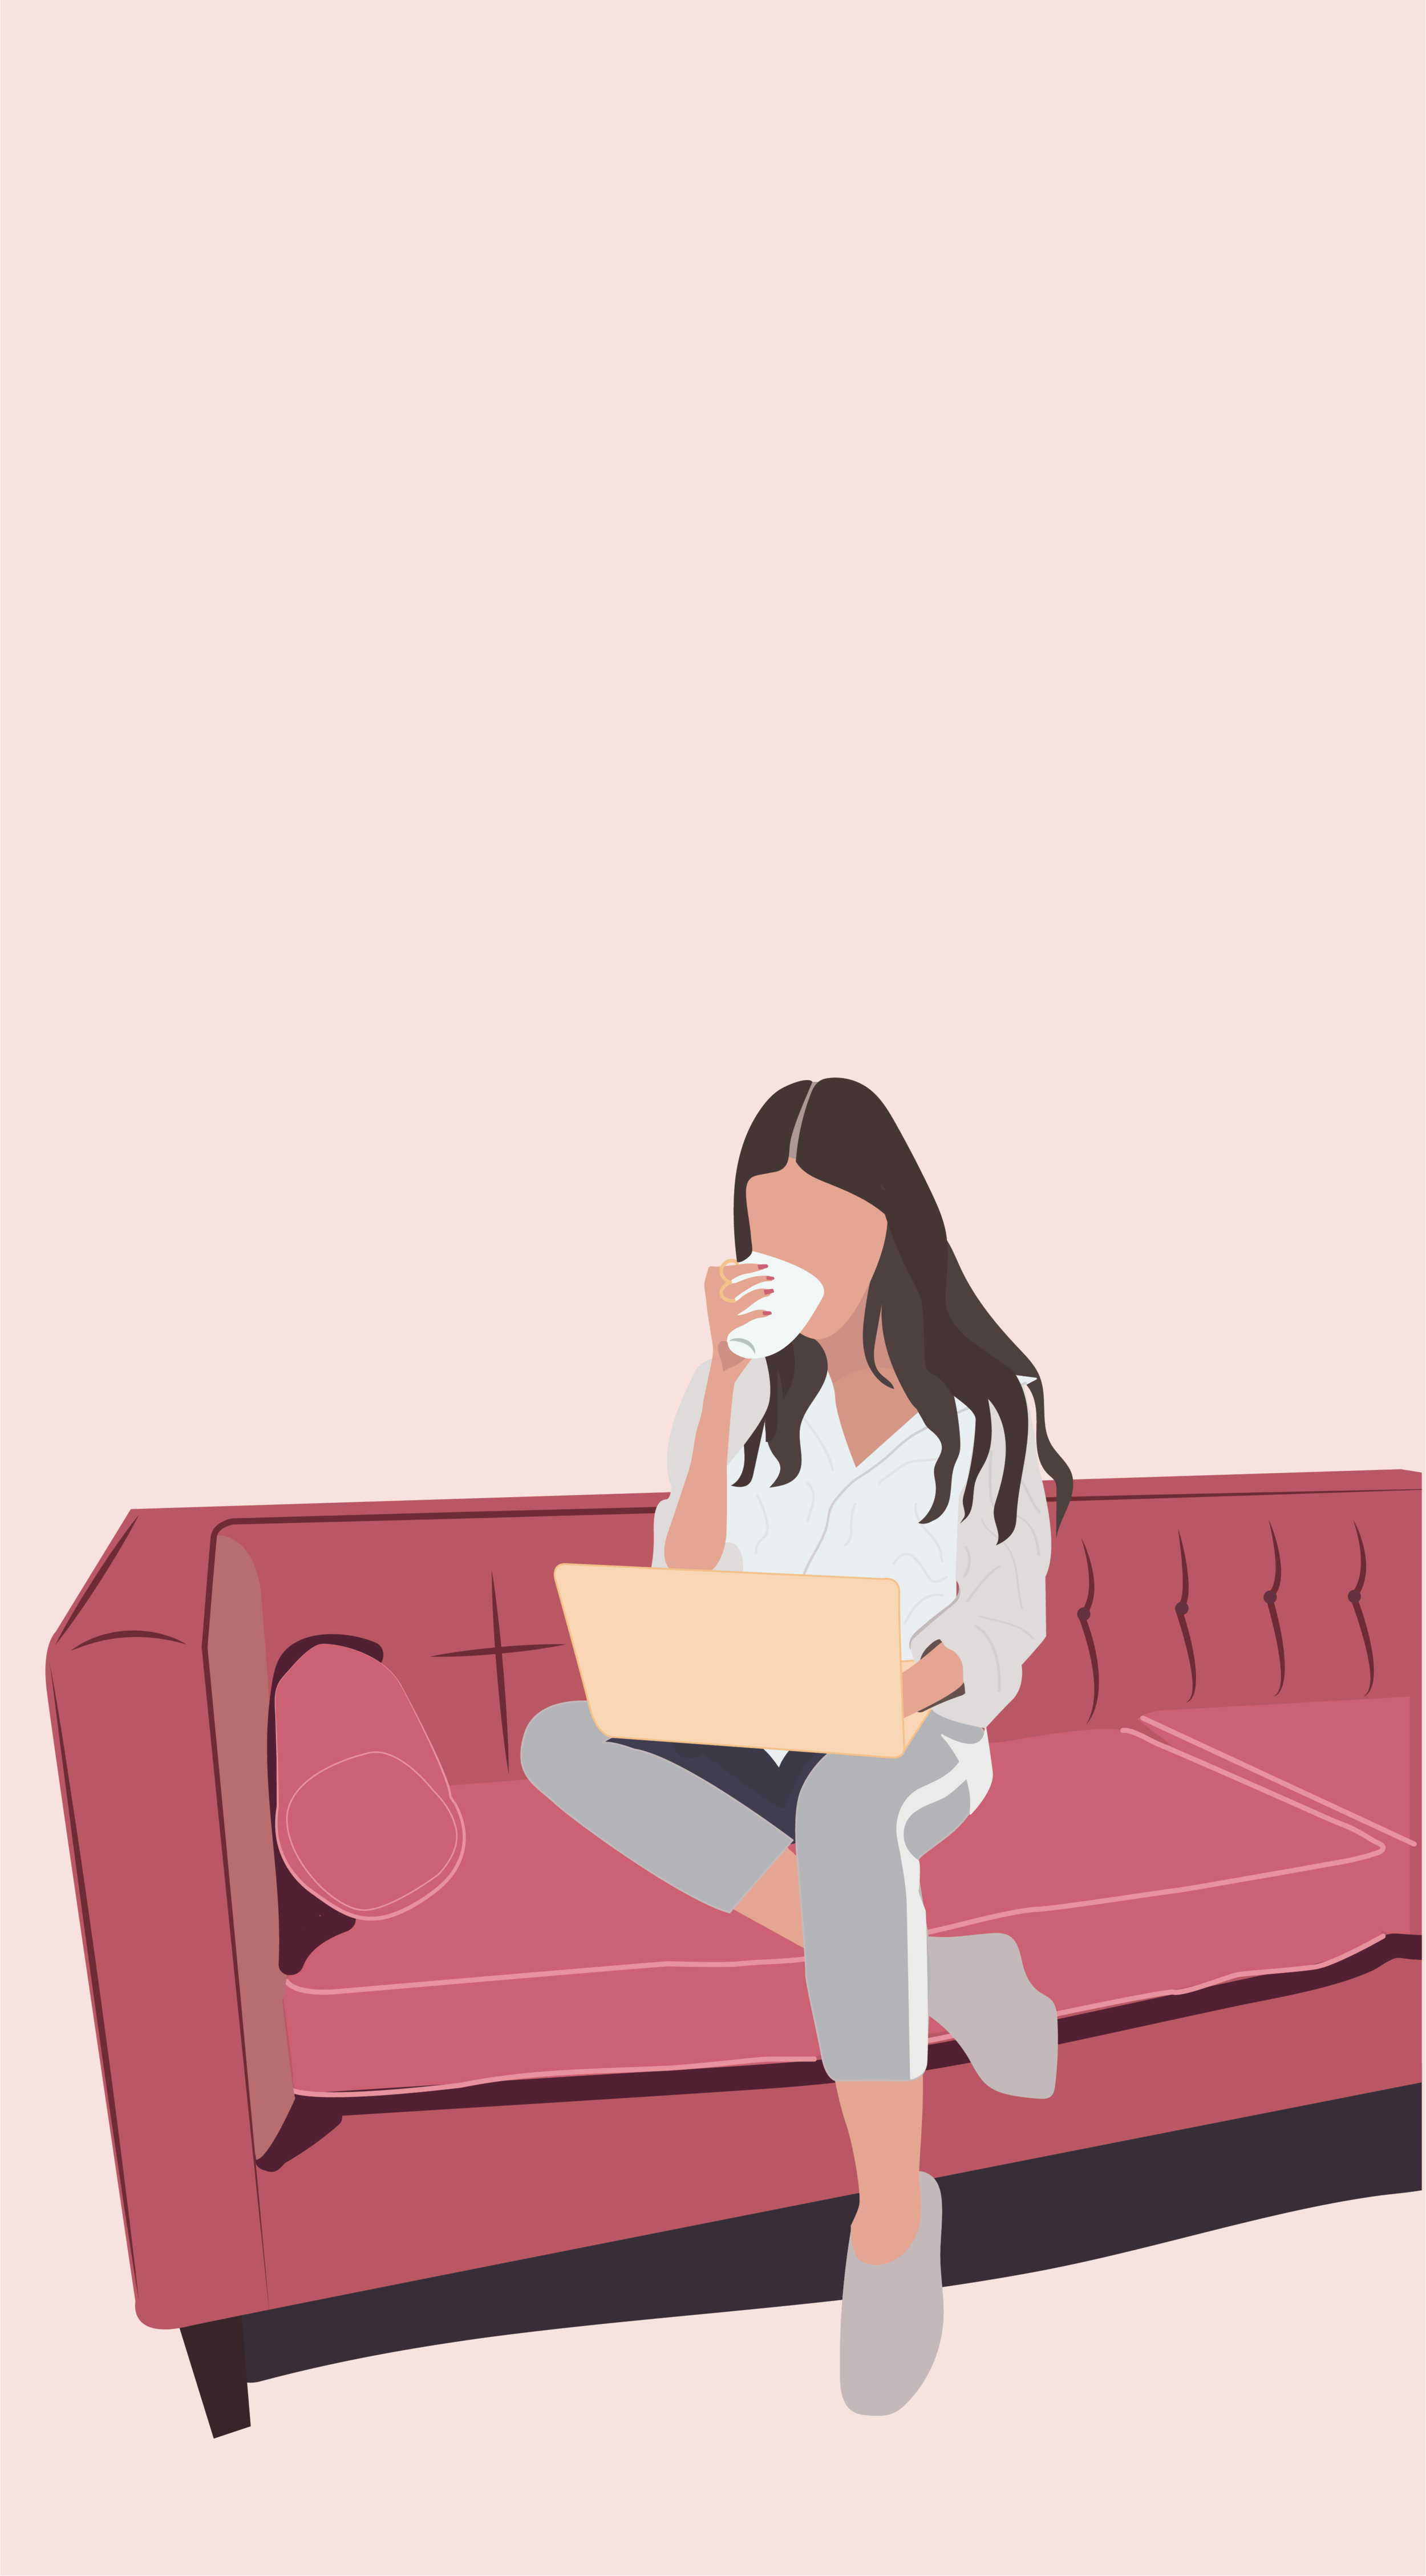 fashion woman sitting on couch on lap top-01-01.png